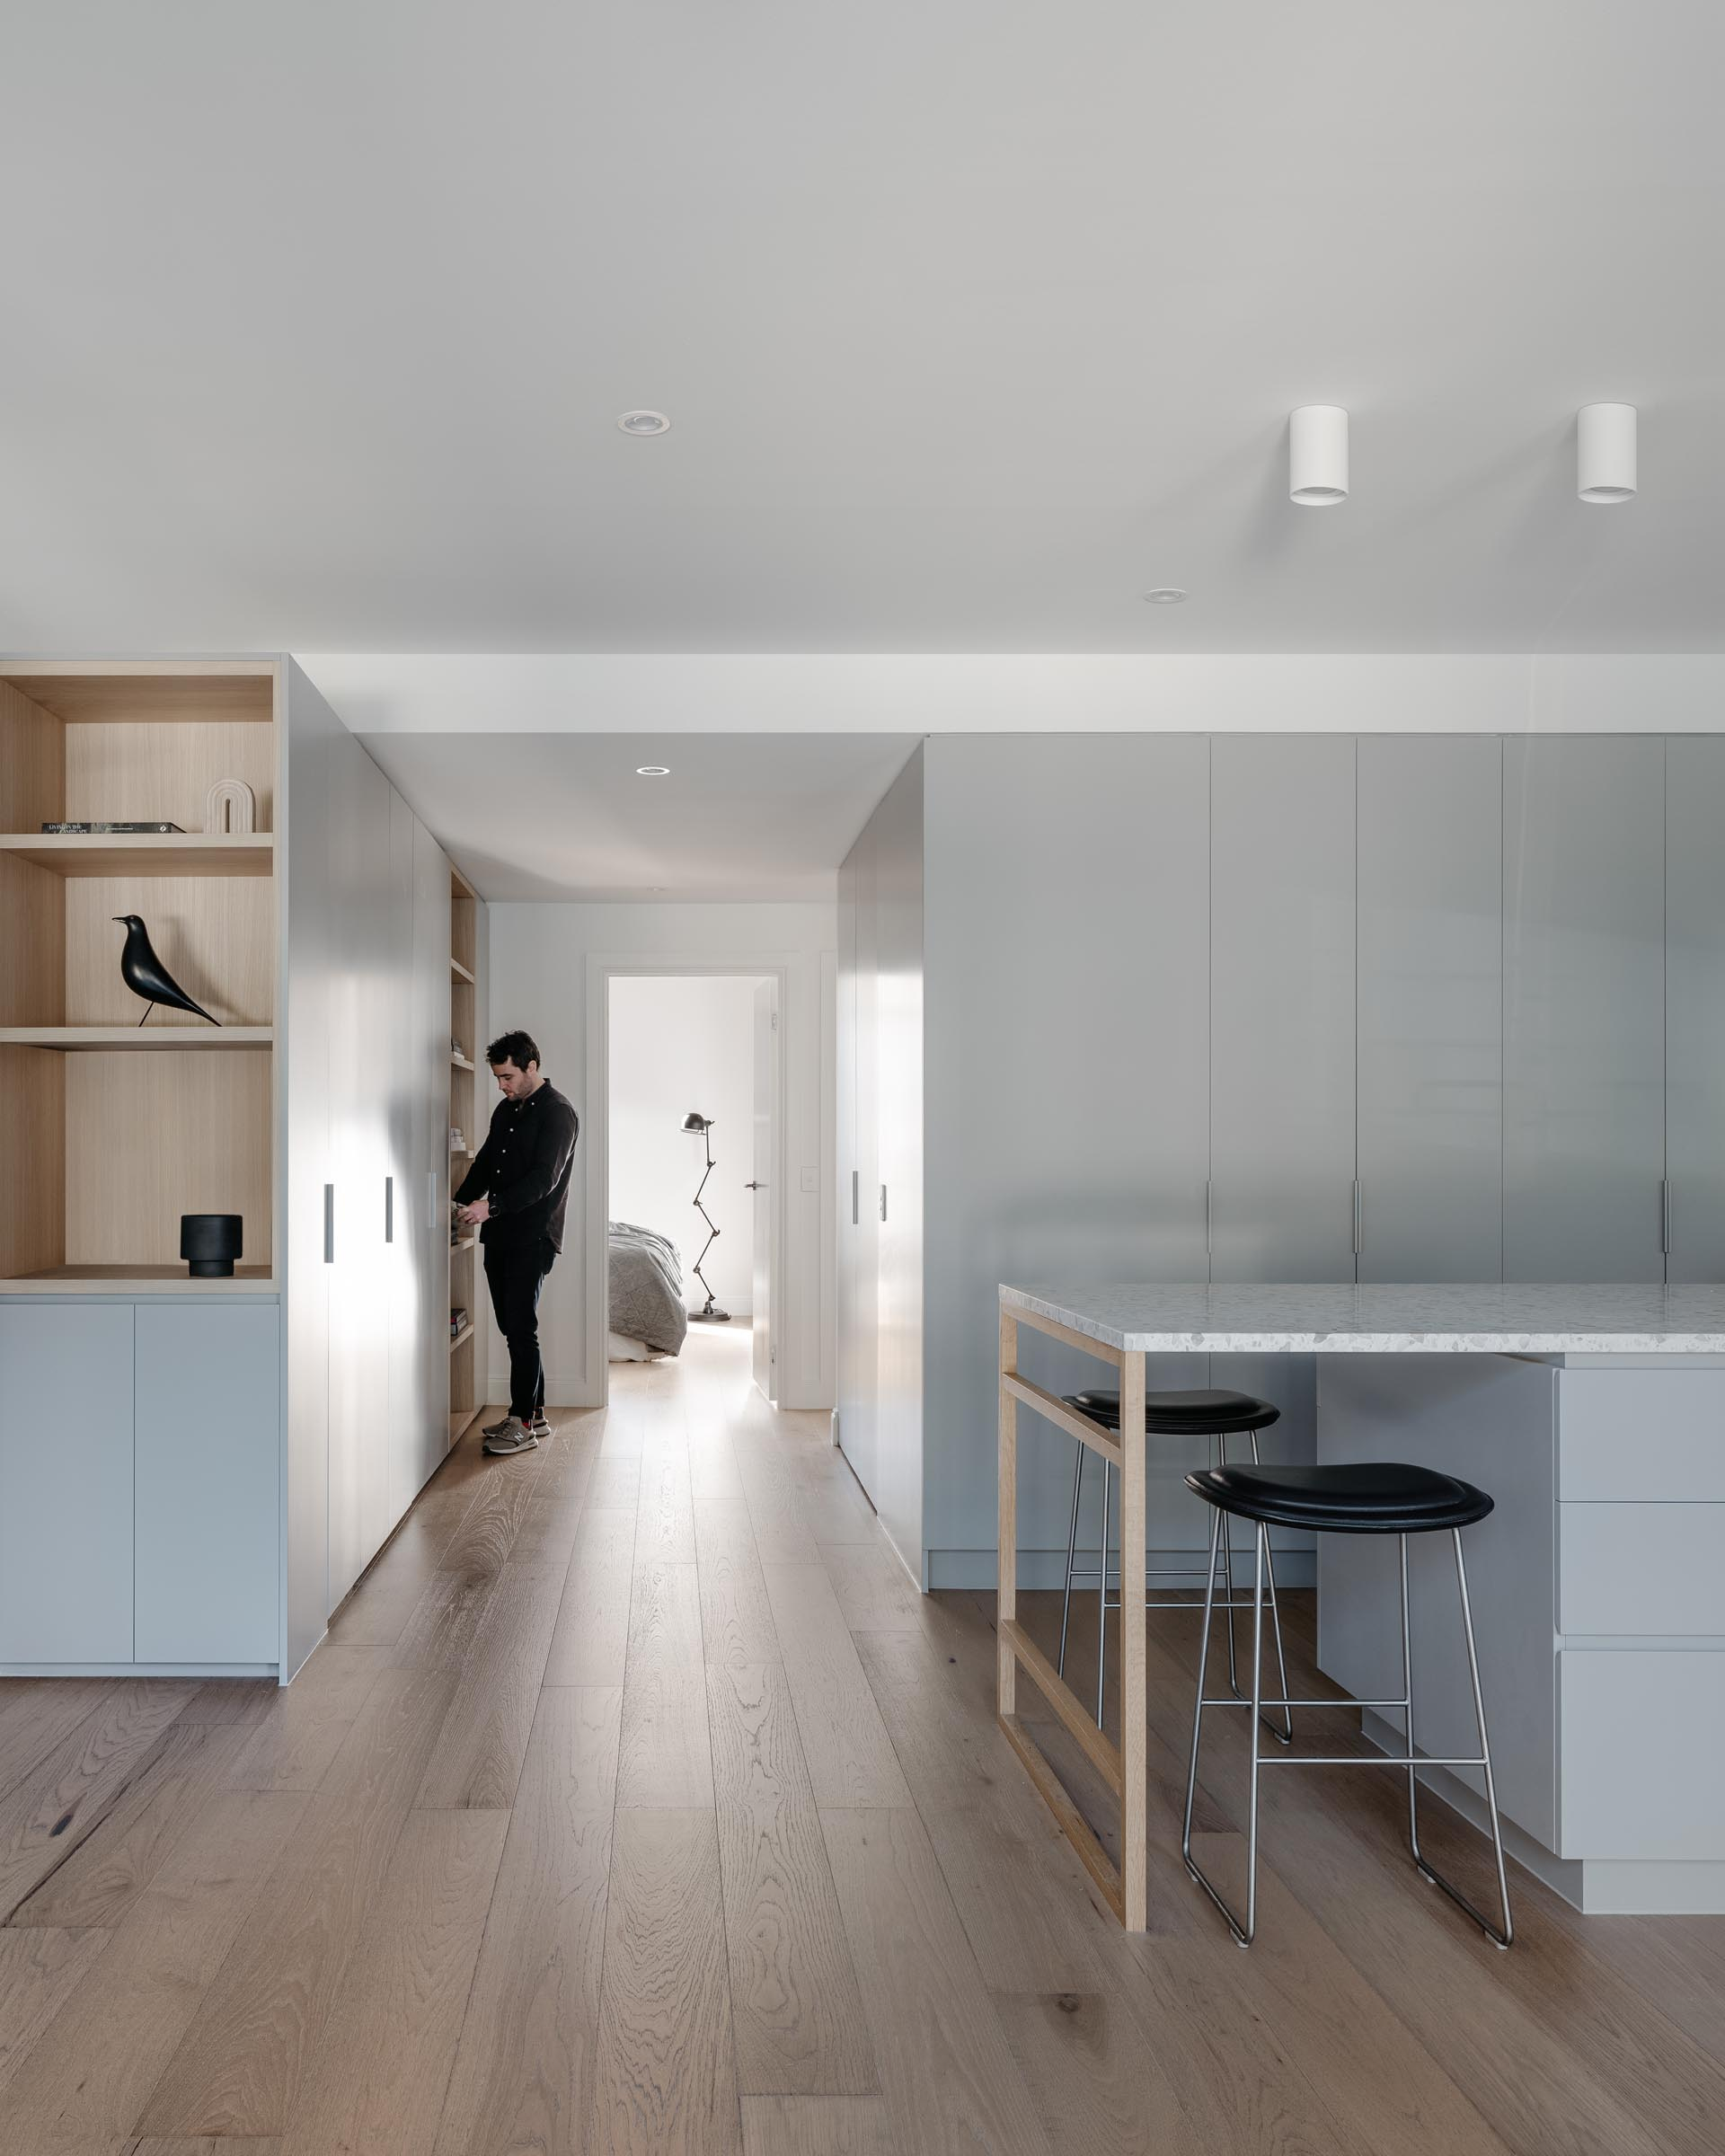 A modern apartment with minimalist light gray cabinets and oak flooring.